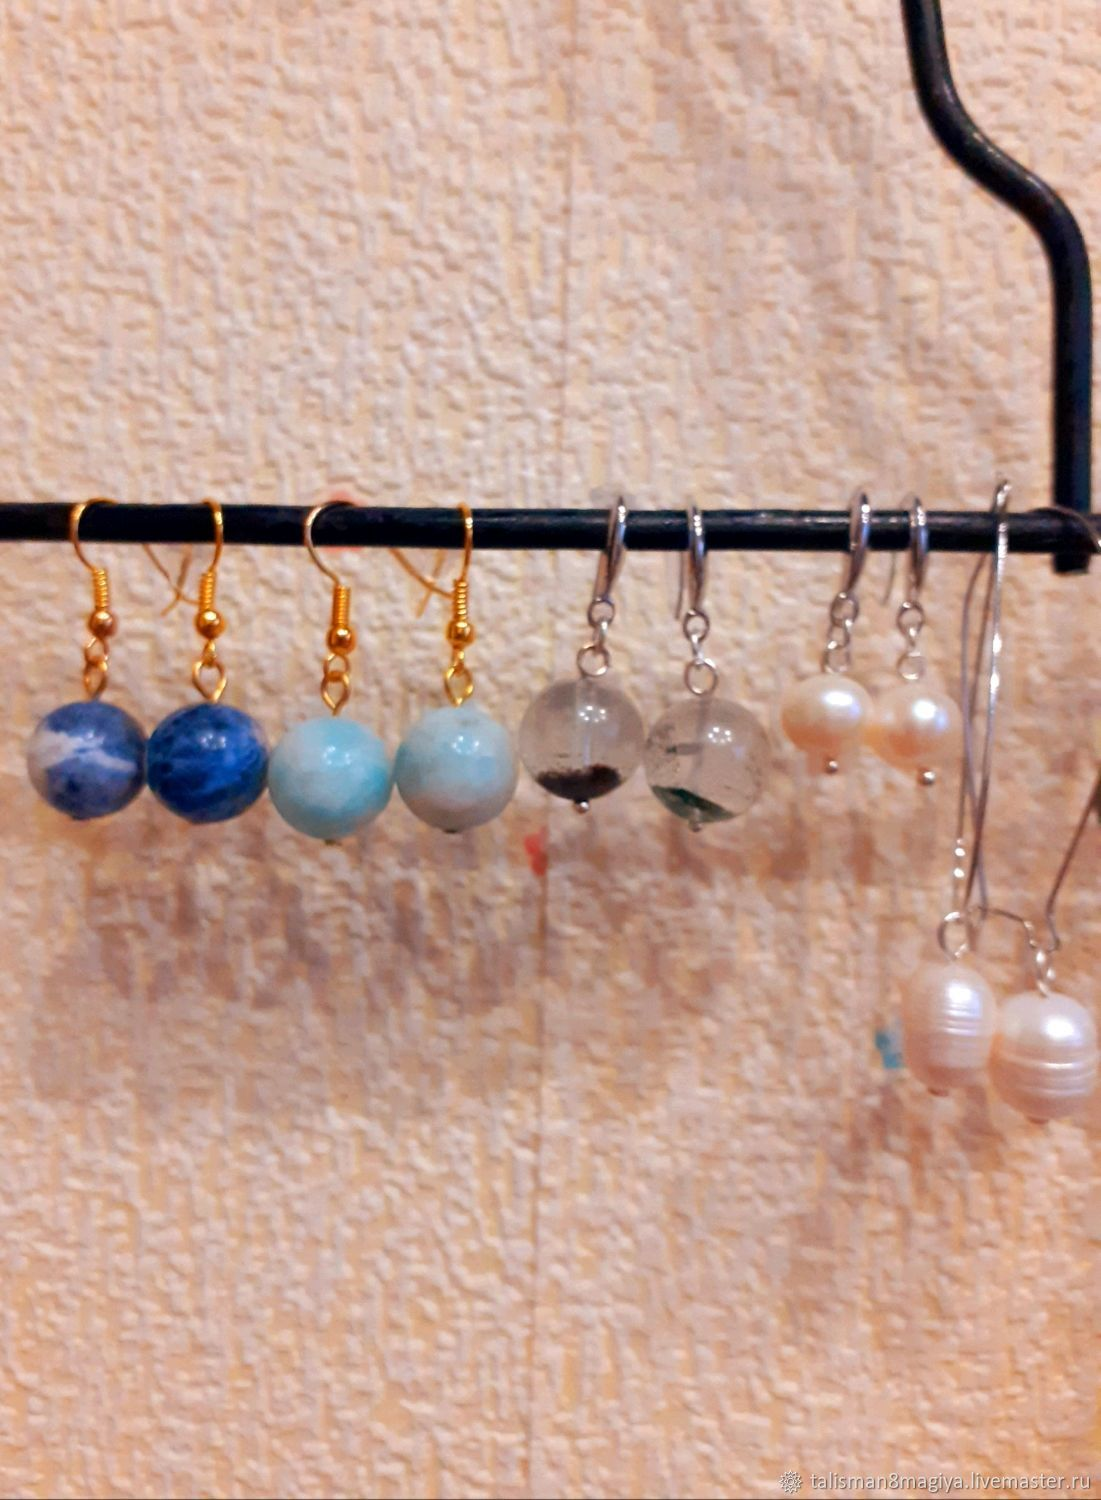 Long and short earrings with natural stones from 4 to 20 mm stones, Earrings, Moscow,  Фото №1